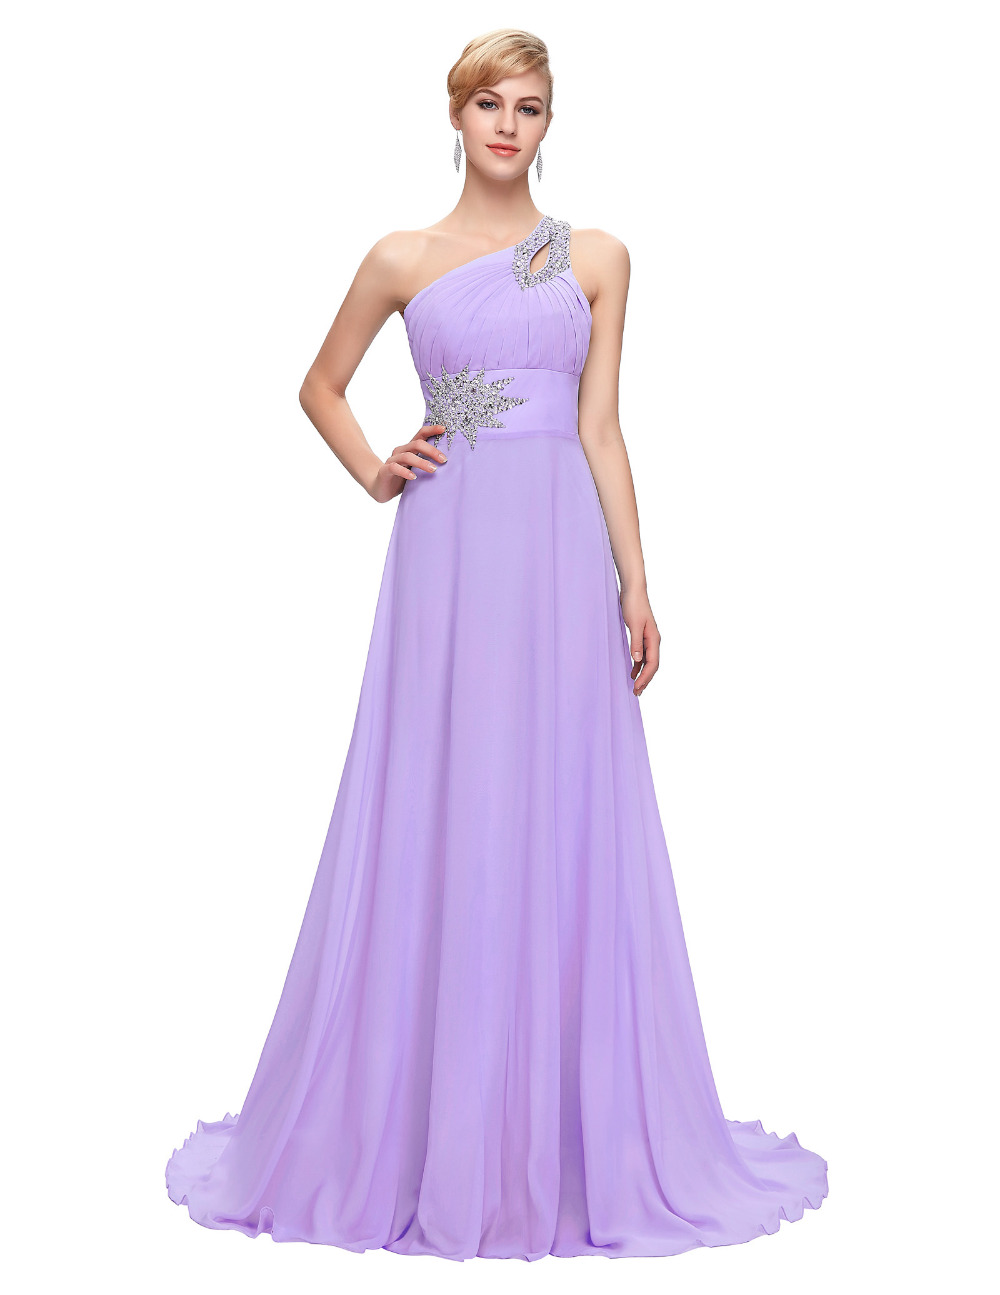 Cheap Lilac Bridesmaid Dresses - Junoir Bridesmaid Dresses